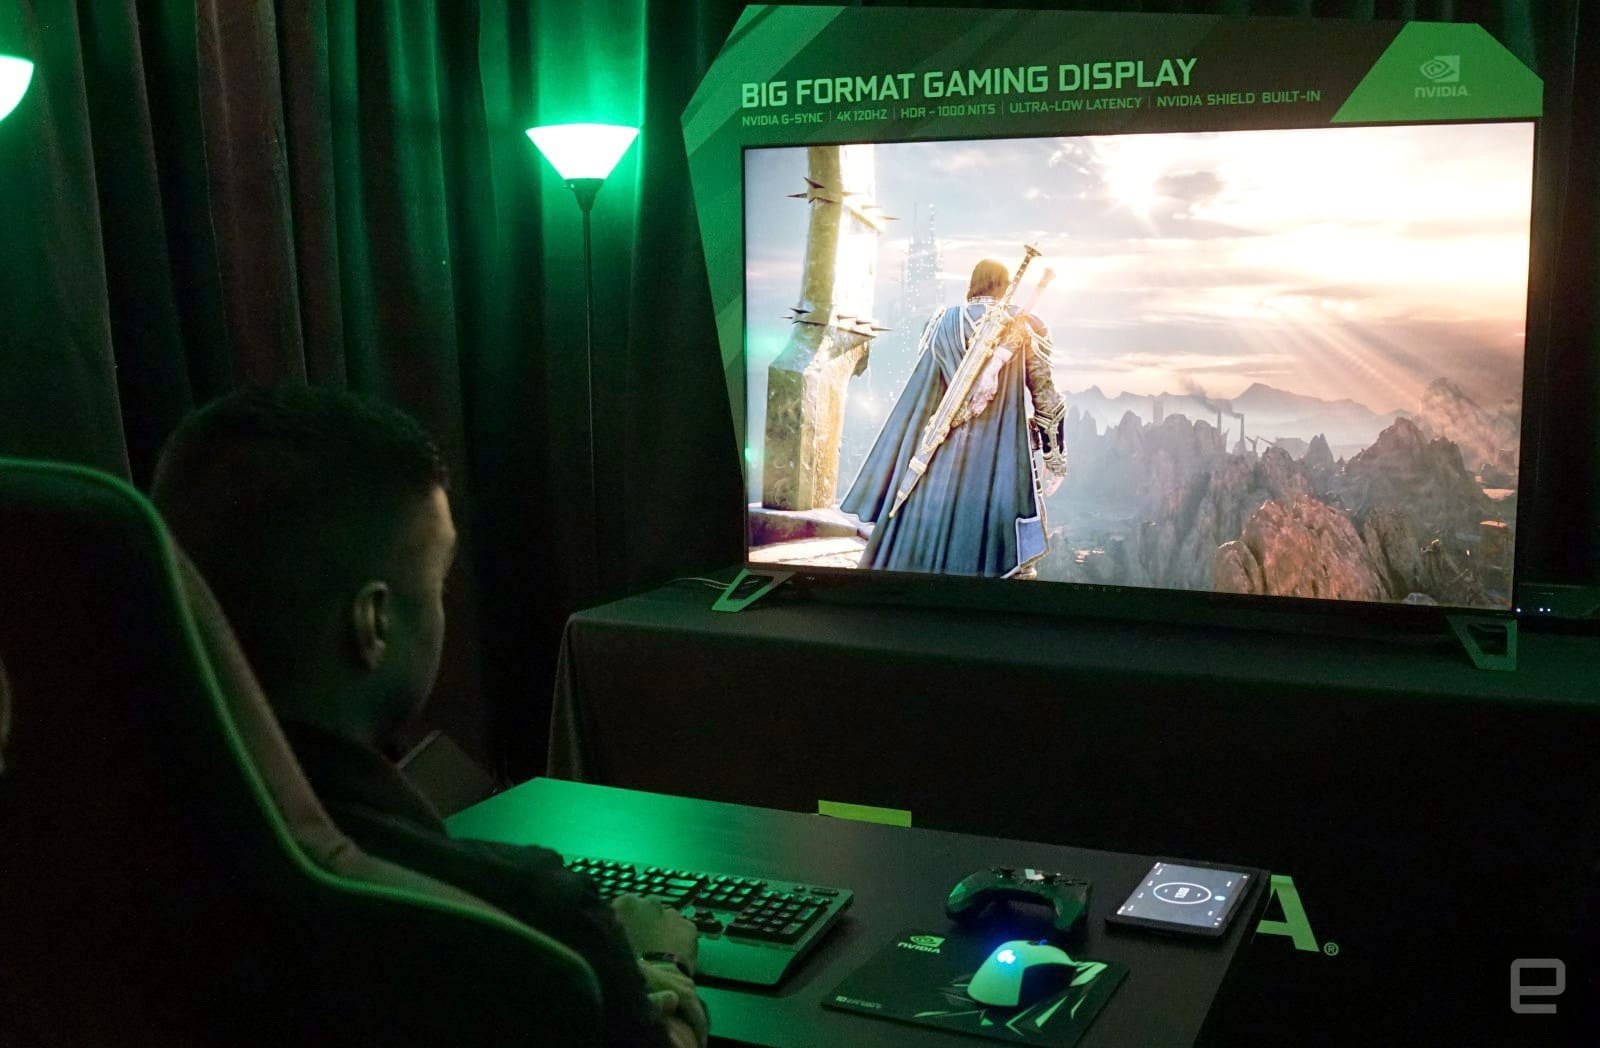 Hands-on with NVIDIA's giant gaming displays and GeForce Now